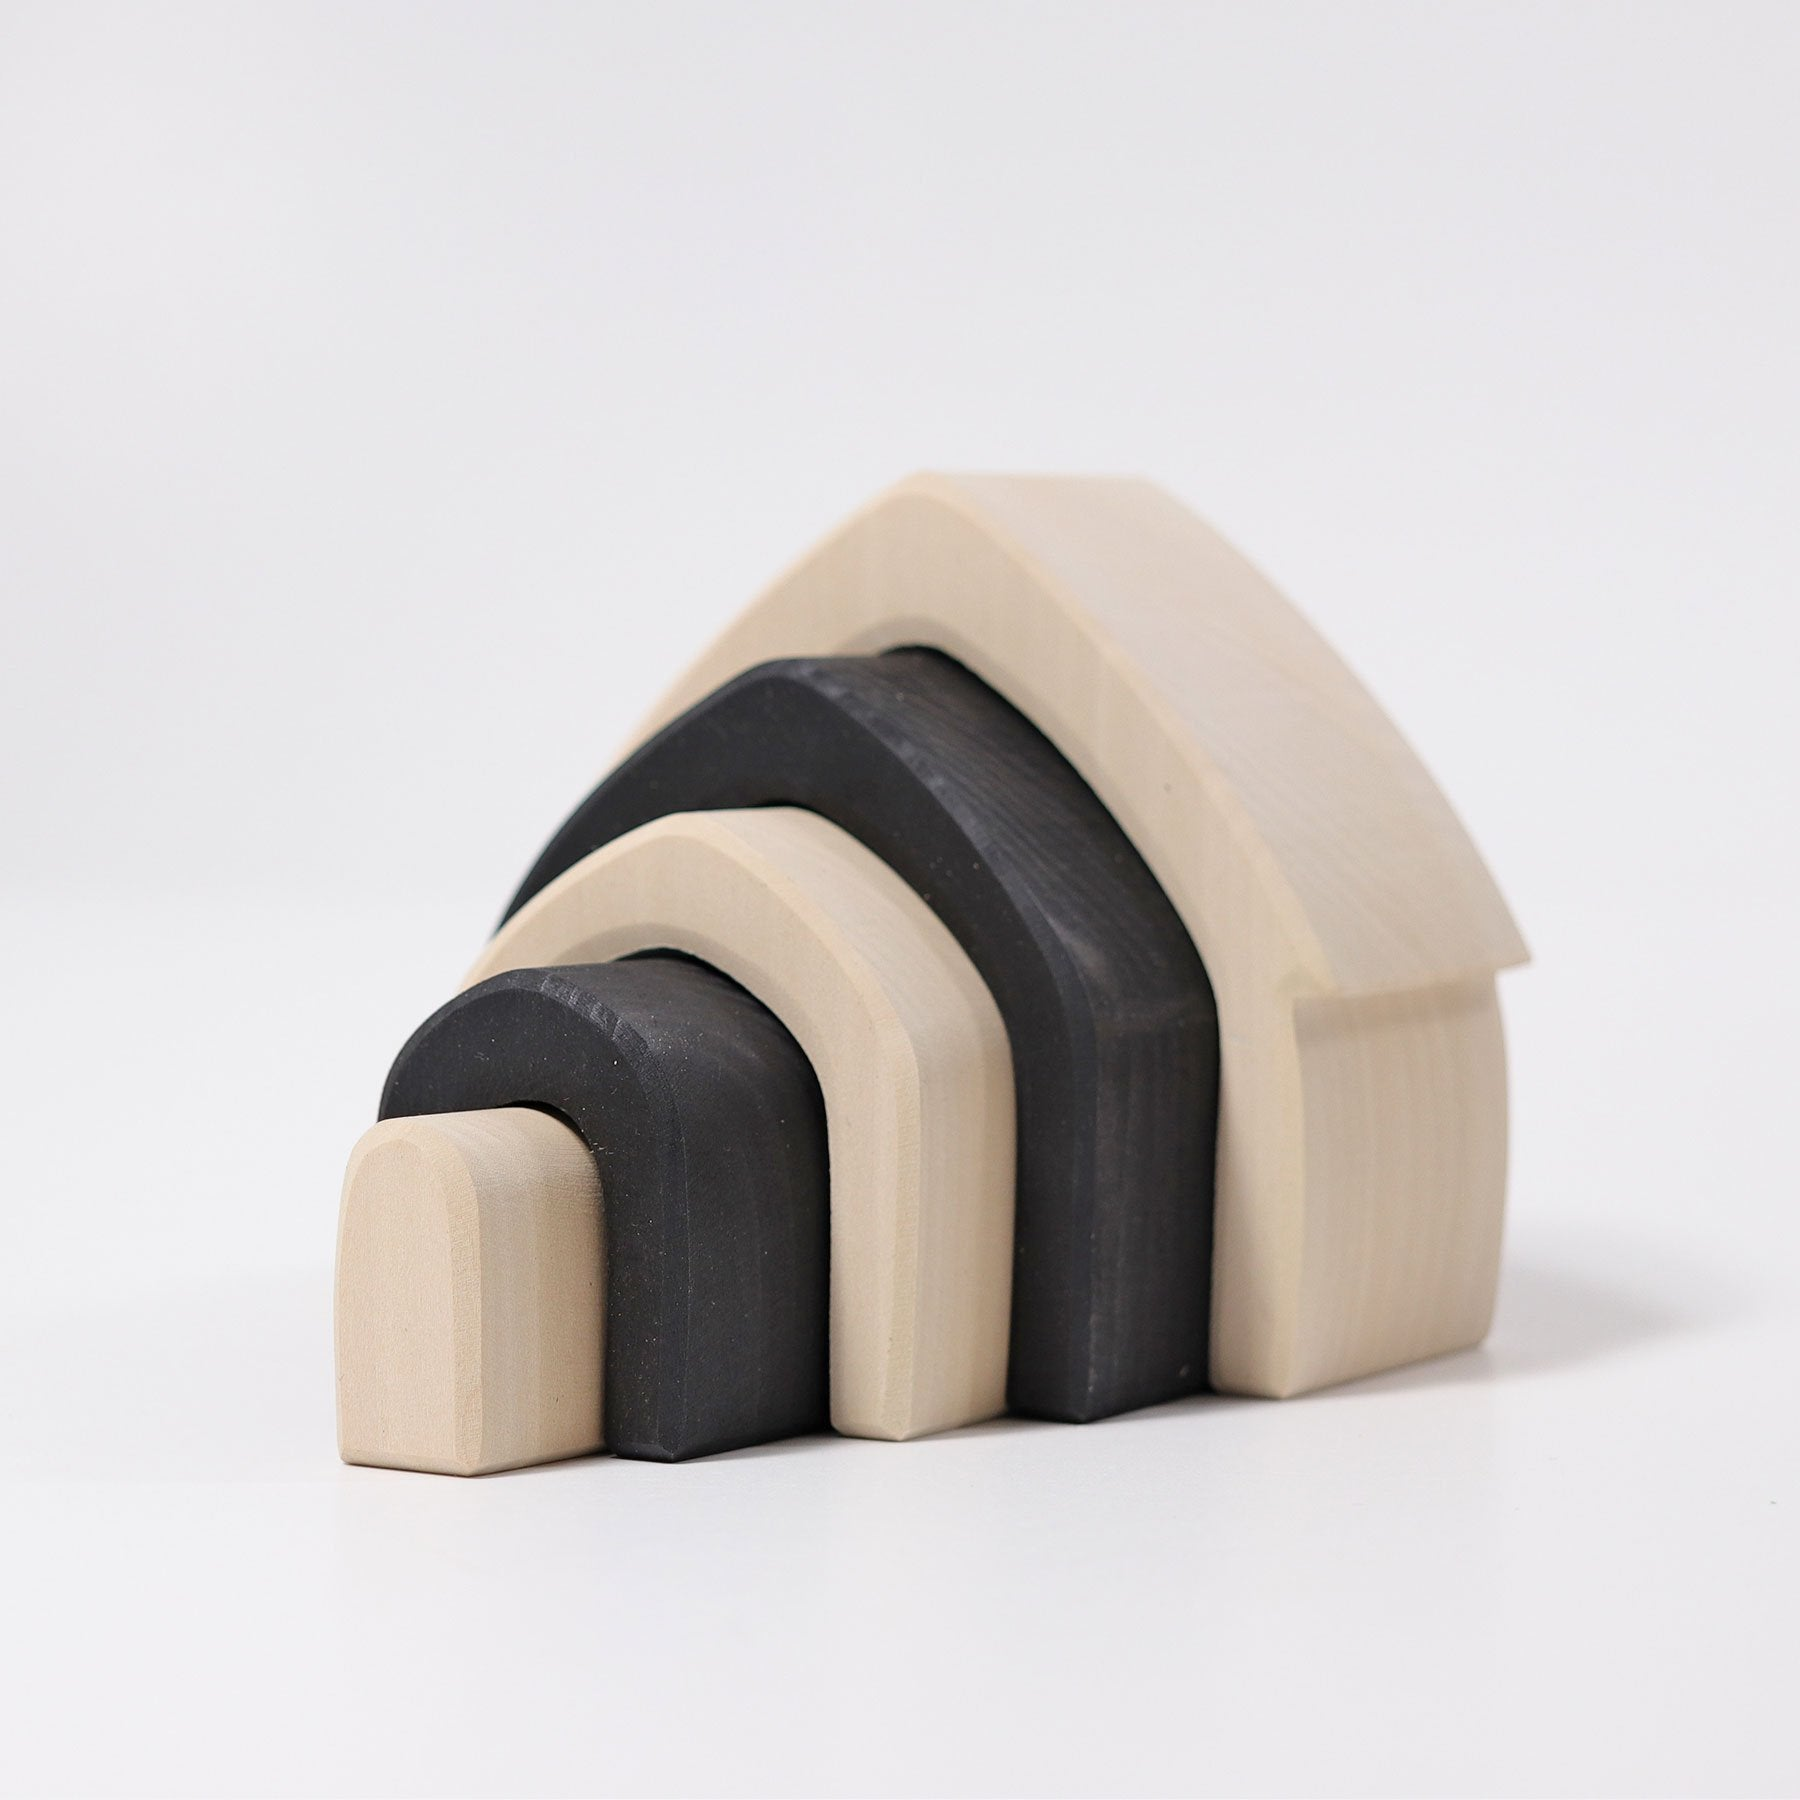 Grimms Monochrome Stacking House Grimms Wooden Toys at Little Earth Nest Eco Shop